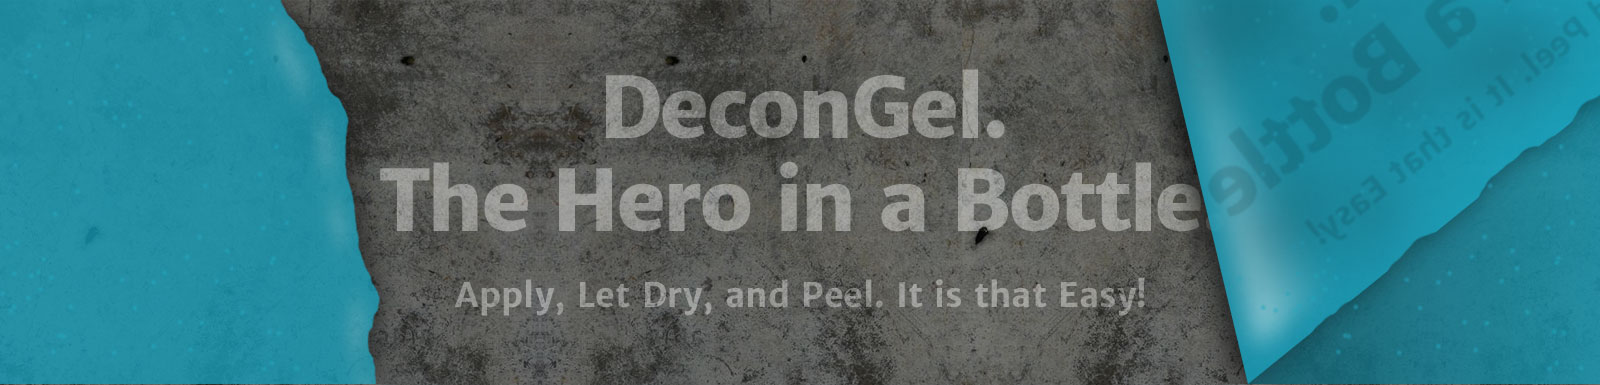 Decongel. The Hero in a Bottle. Apply, let dry and peel. It is that easy.